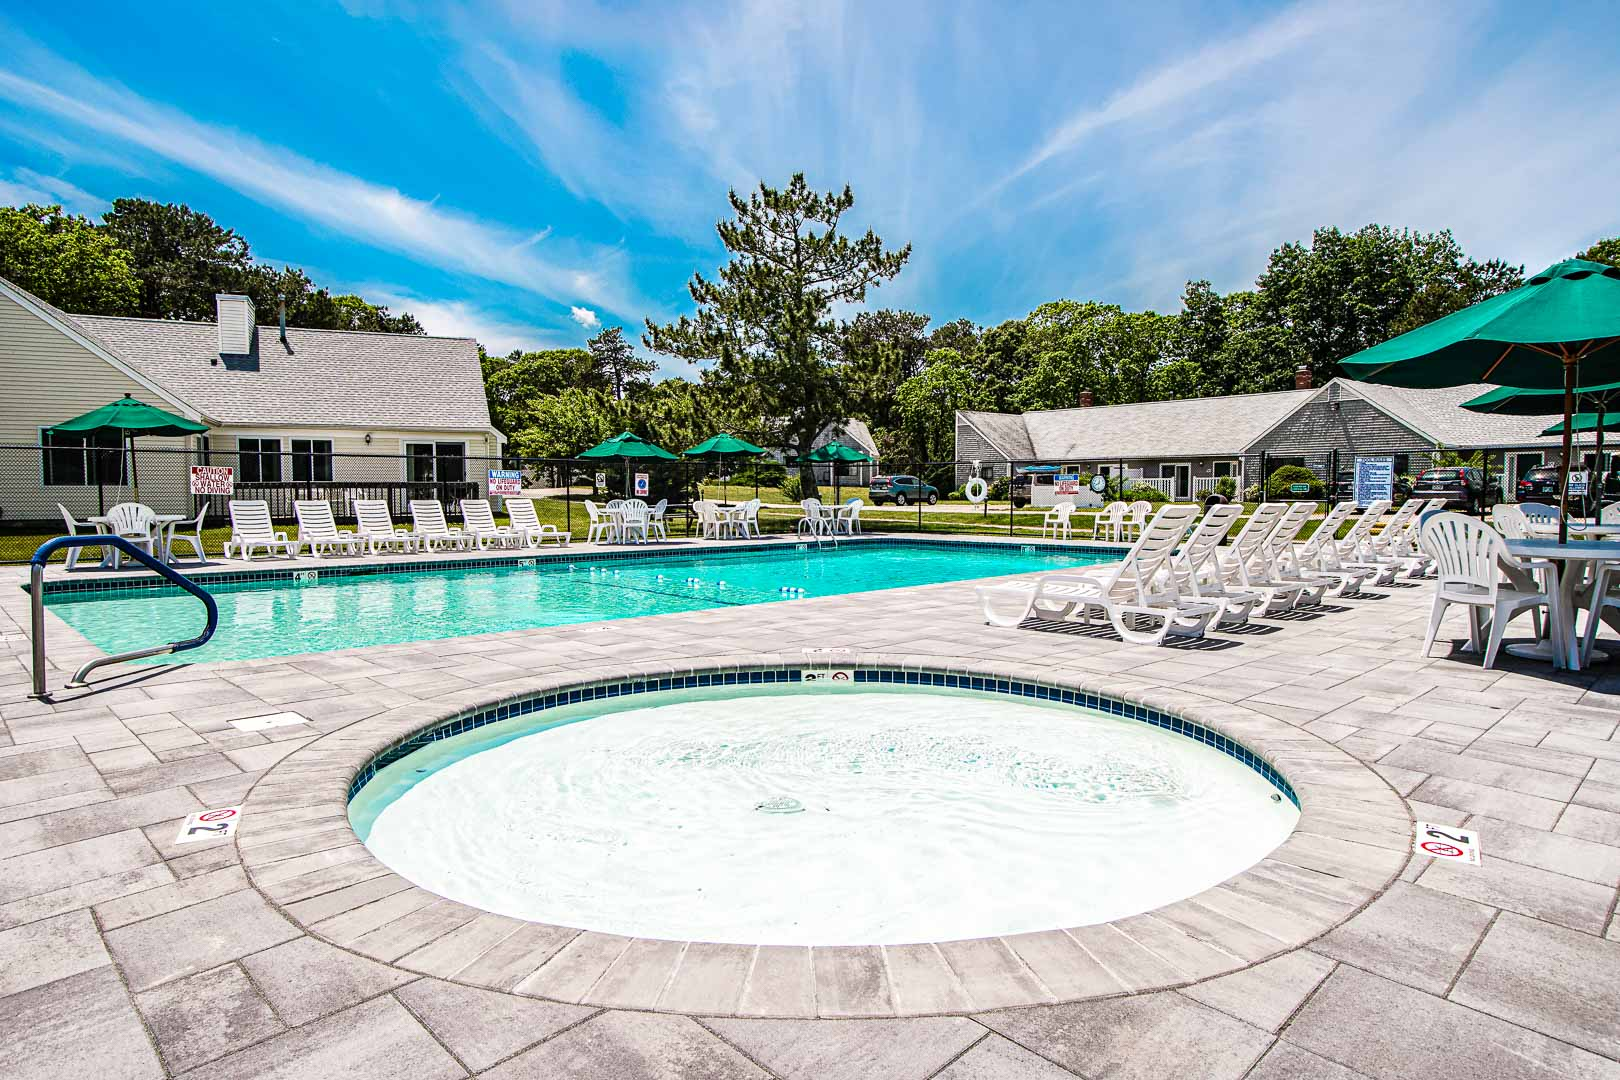 A serene view of the outside swimming pool and jacuzzi at VRI's Brewster Green Resort in Massachusetts.